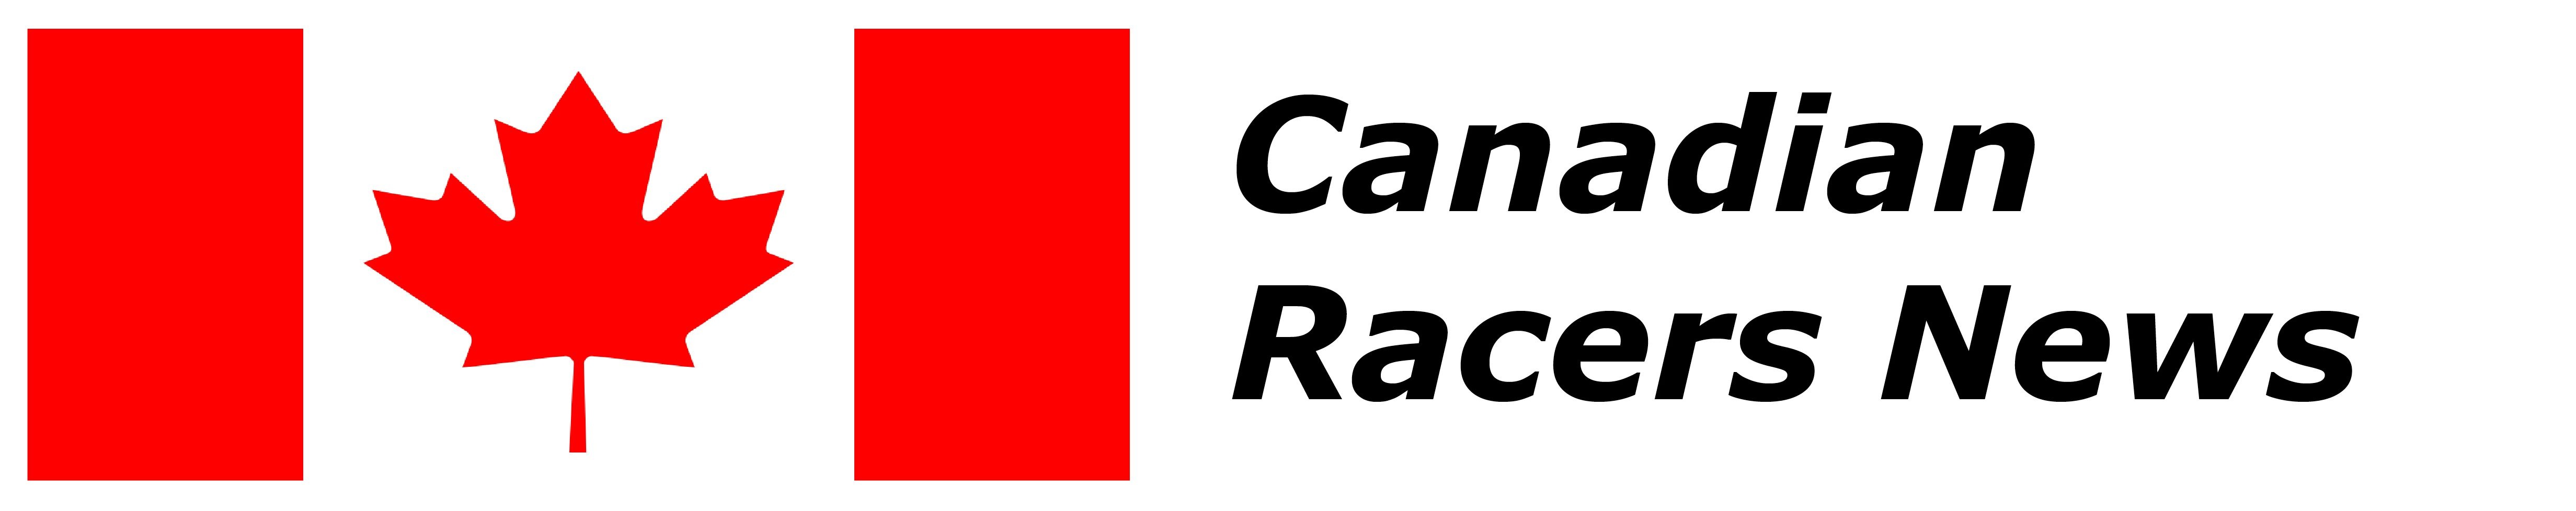 Canadian Racers News